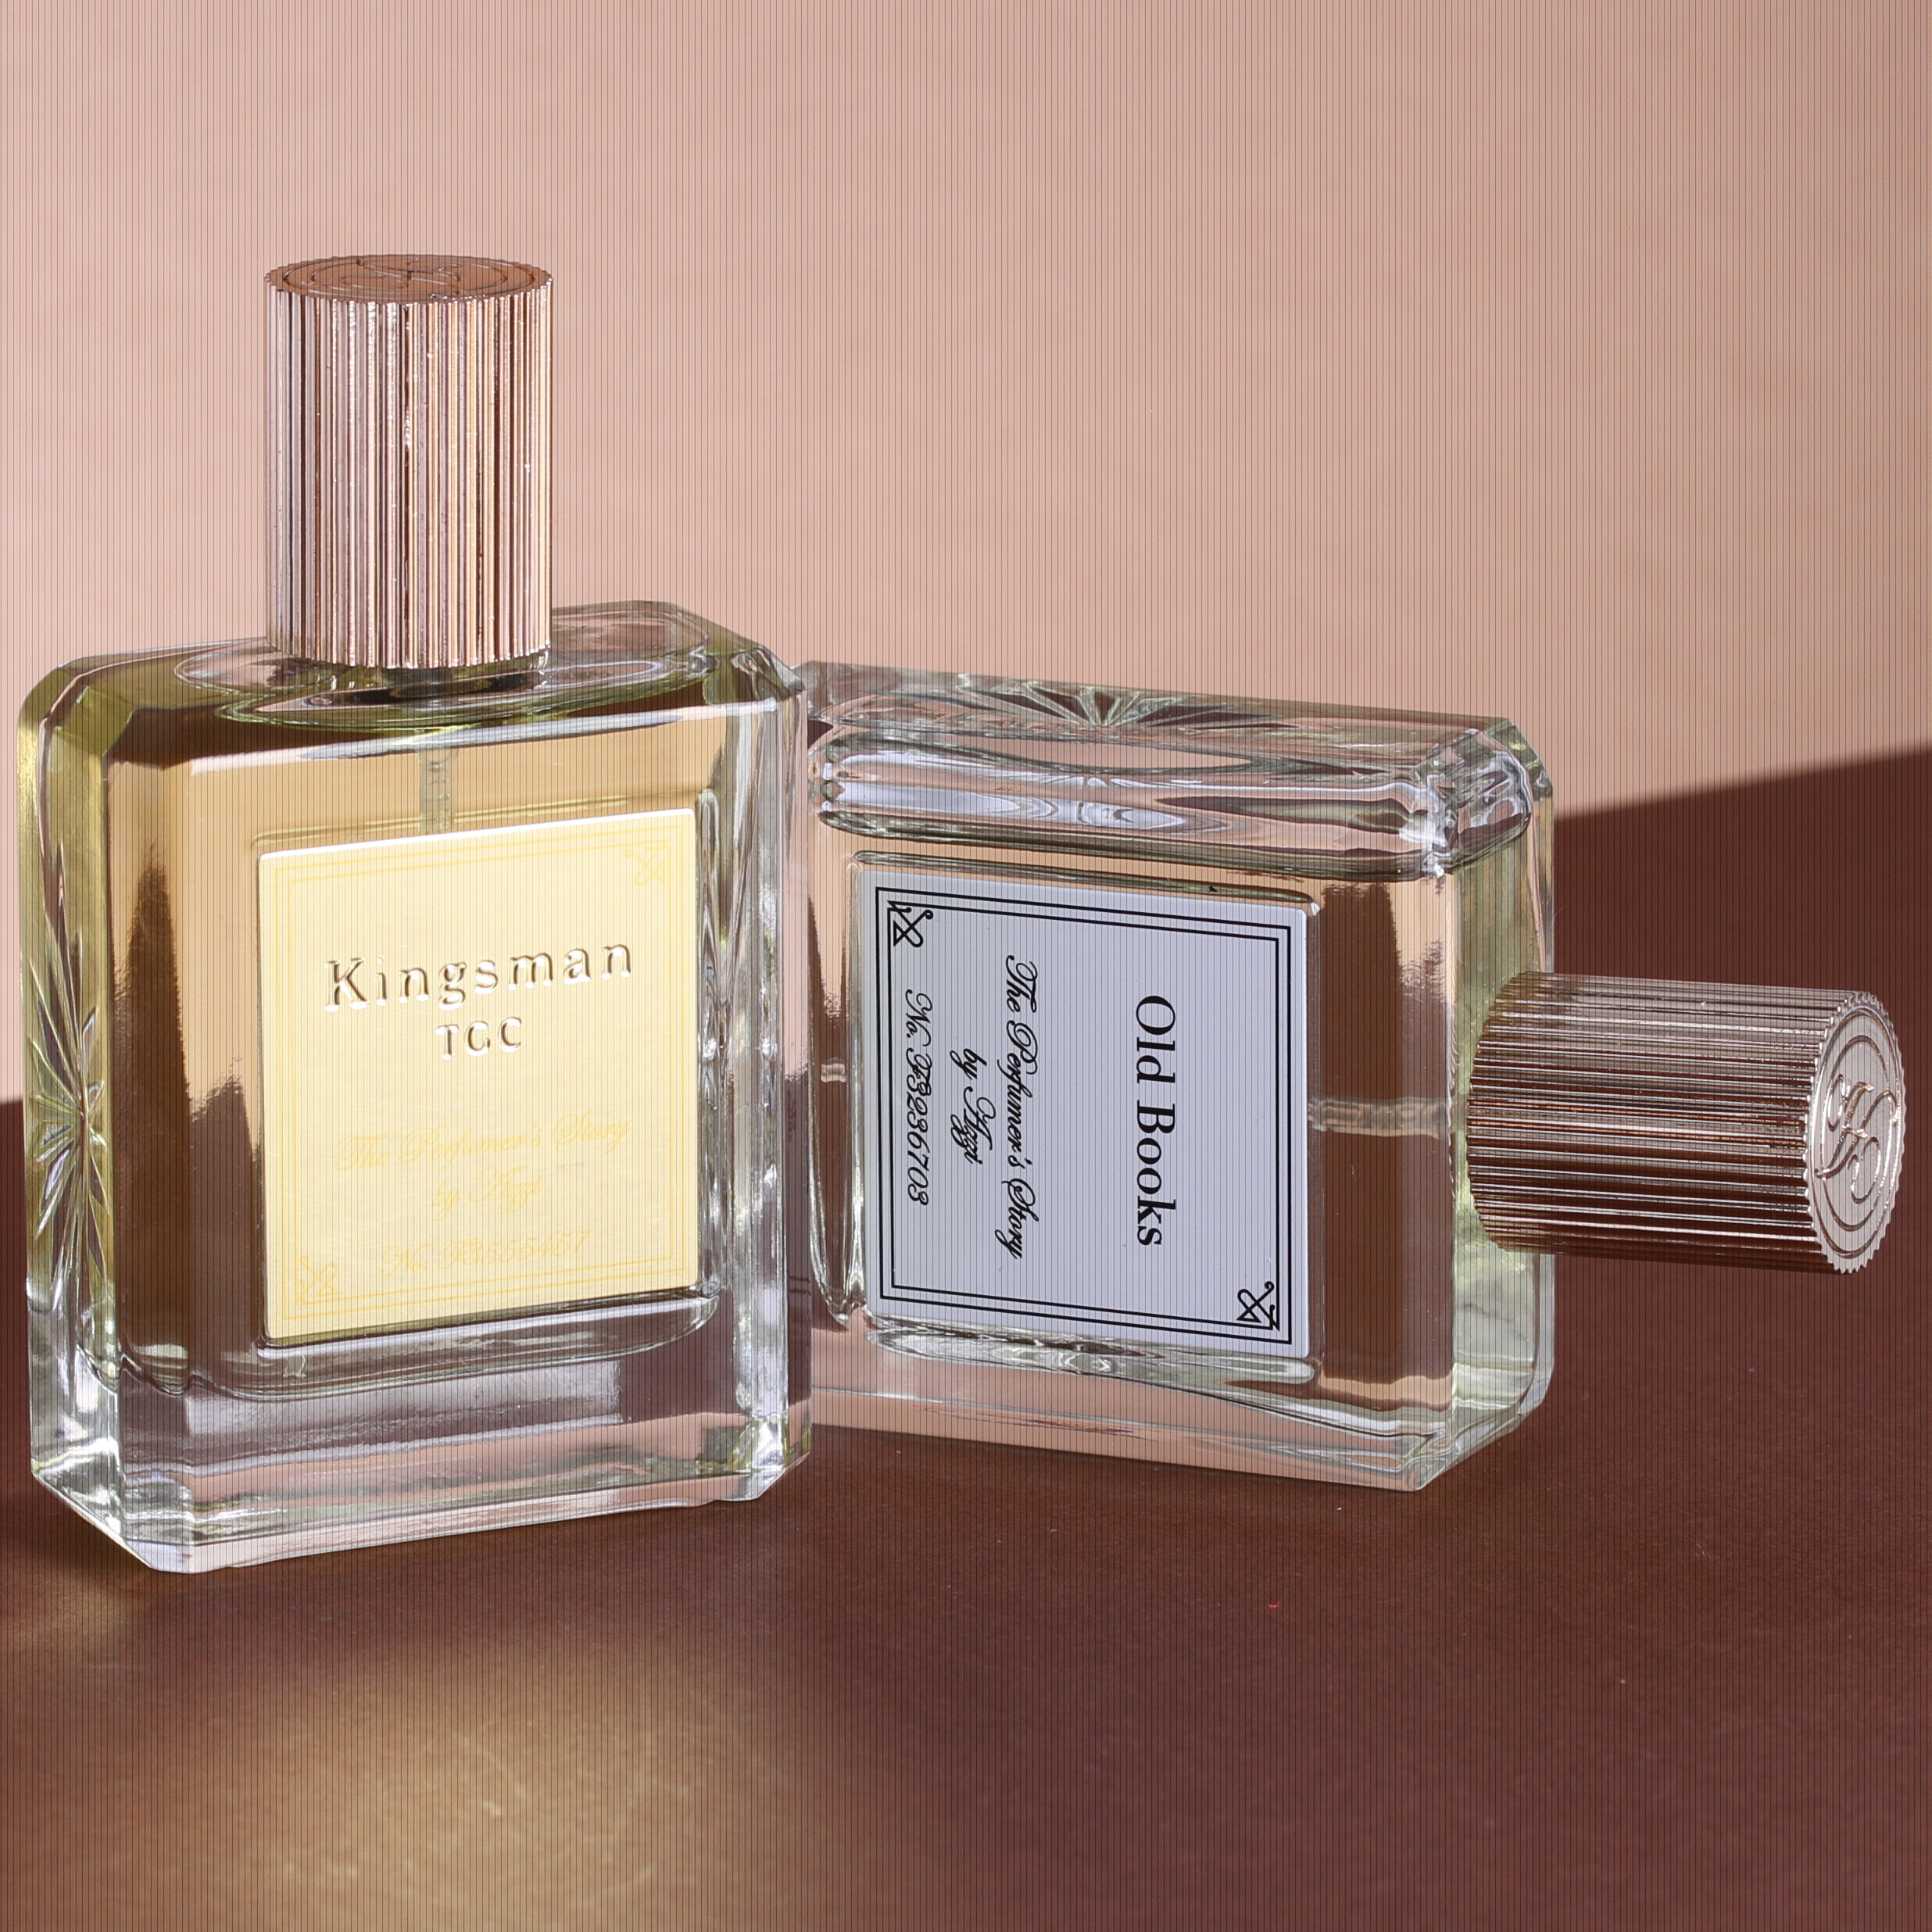 Kingsman TGC & Old Books - The Kingsman TGC - Based on the virtual DNA print of the Kingsman – this scent is elegant, provocative and intellectual. It opens with notes of English Earl Grey Tea and Neroli blended with the finest notes of Laurel Leaf and Elemi Oil, blended with hints of Clary Sage enveloped with delicious Rum, Tobacco flower and an overdose of Vetivert - the masculine scent of which evokes the rugged Southwest. With Black Oudh added, it has an addictive depth of strength, loyalty and charm that all desire.30ml £95.00Old Books -Old Books Eau De Parfum whispers to you when you wear it, and also to those around you by the incredible ingredients of frankincense, olibanum, myrrh, and elemi, contrasted with woody notes of patchouli, amber, vetivert and cedar.30ml £95.00theperfumersstory.com